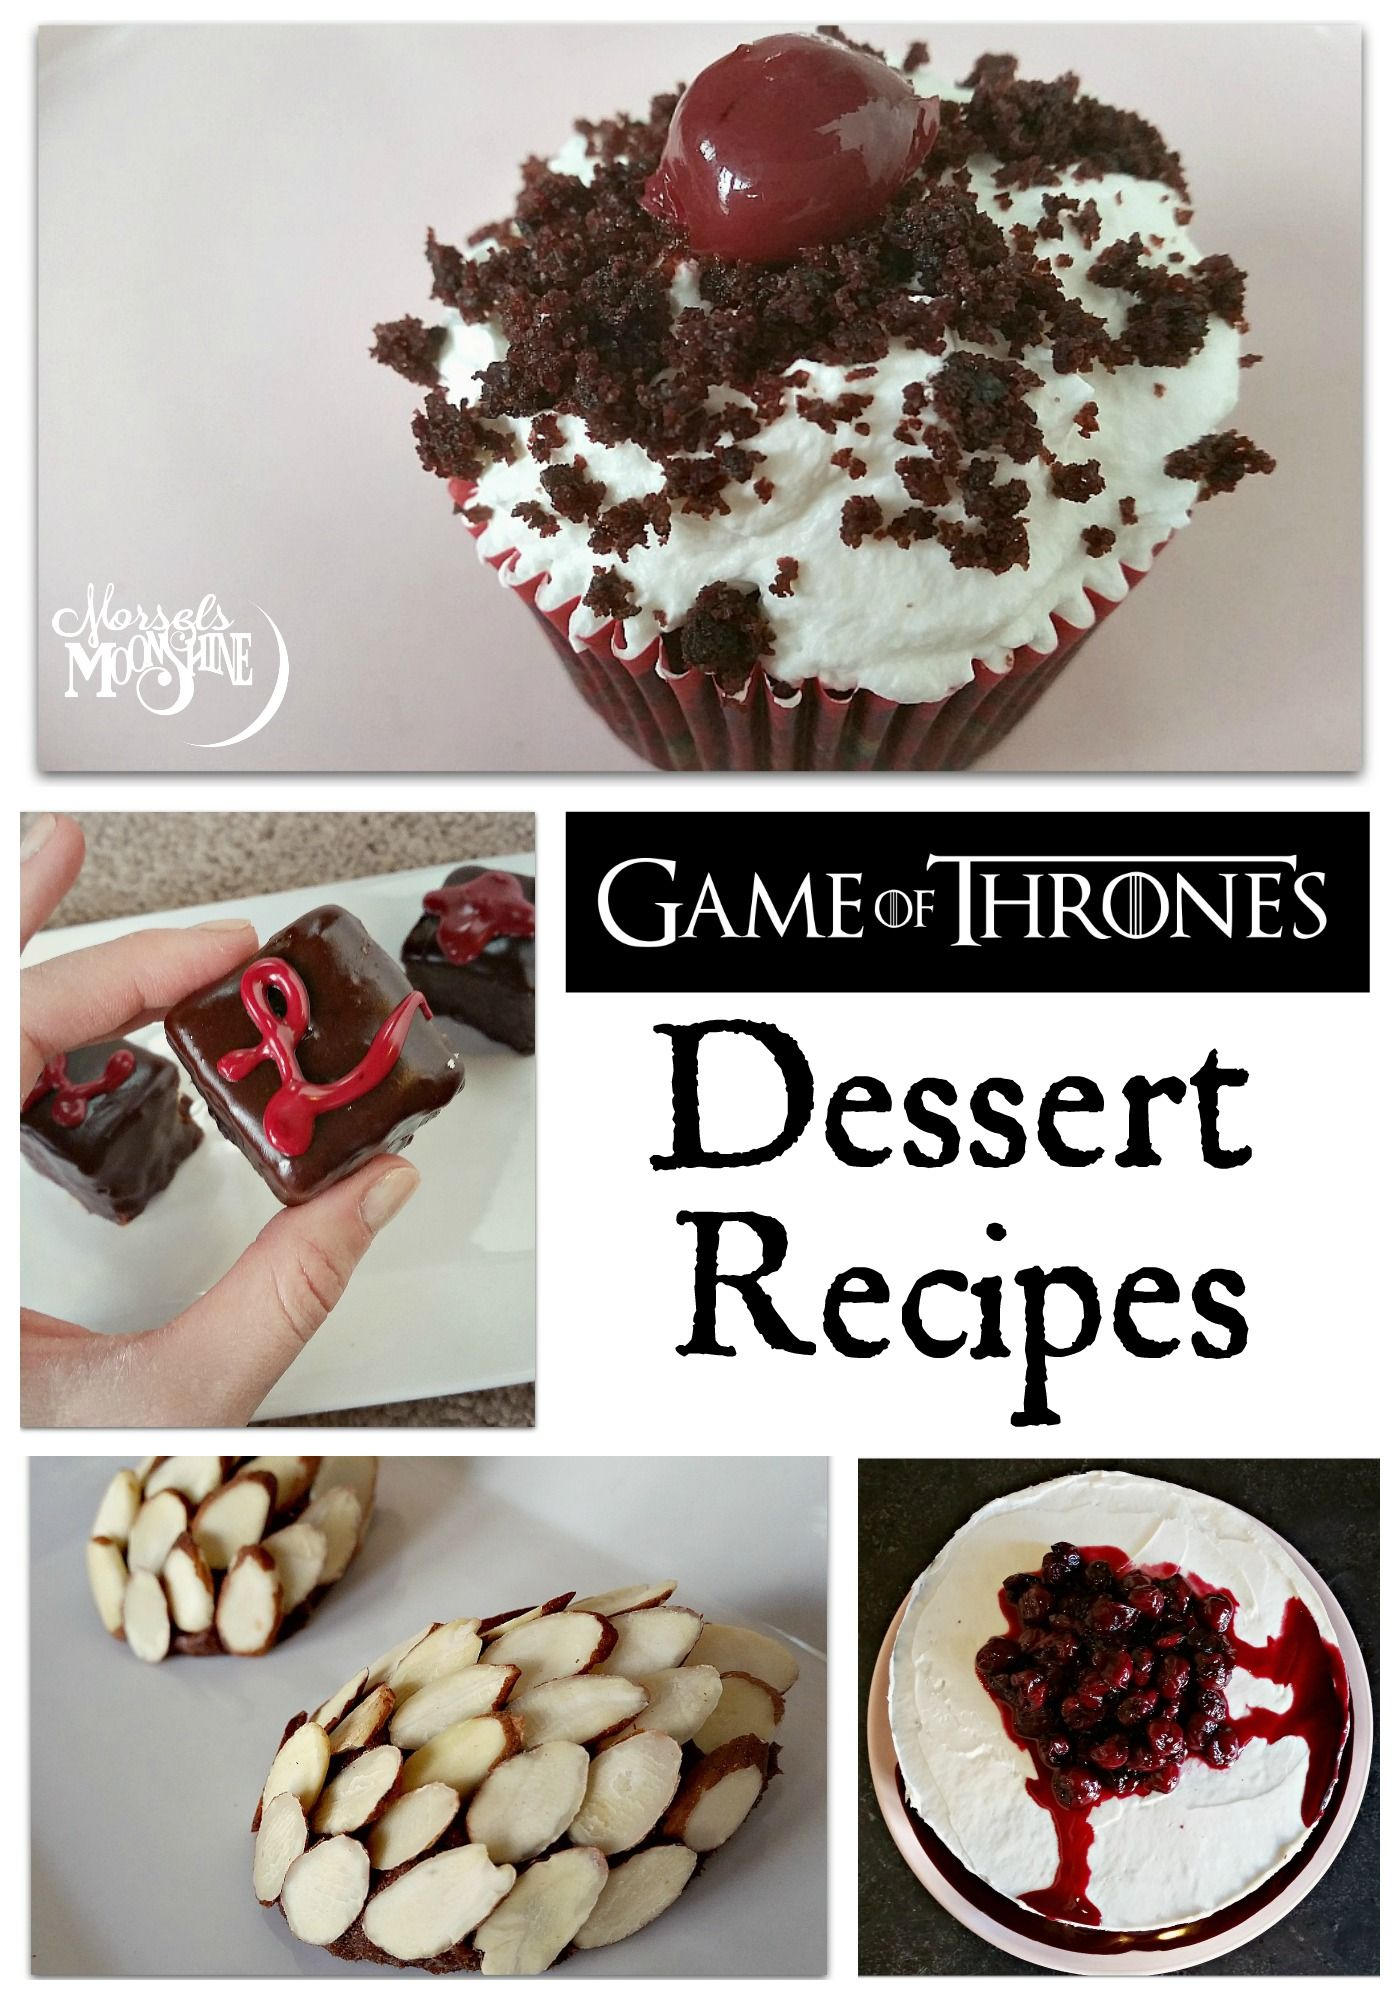 4 boozy game of thrones dessert recipes | red wedding cakes, black